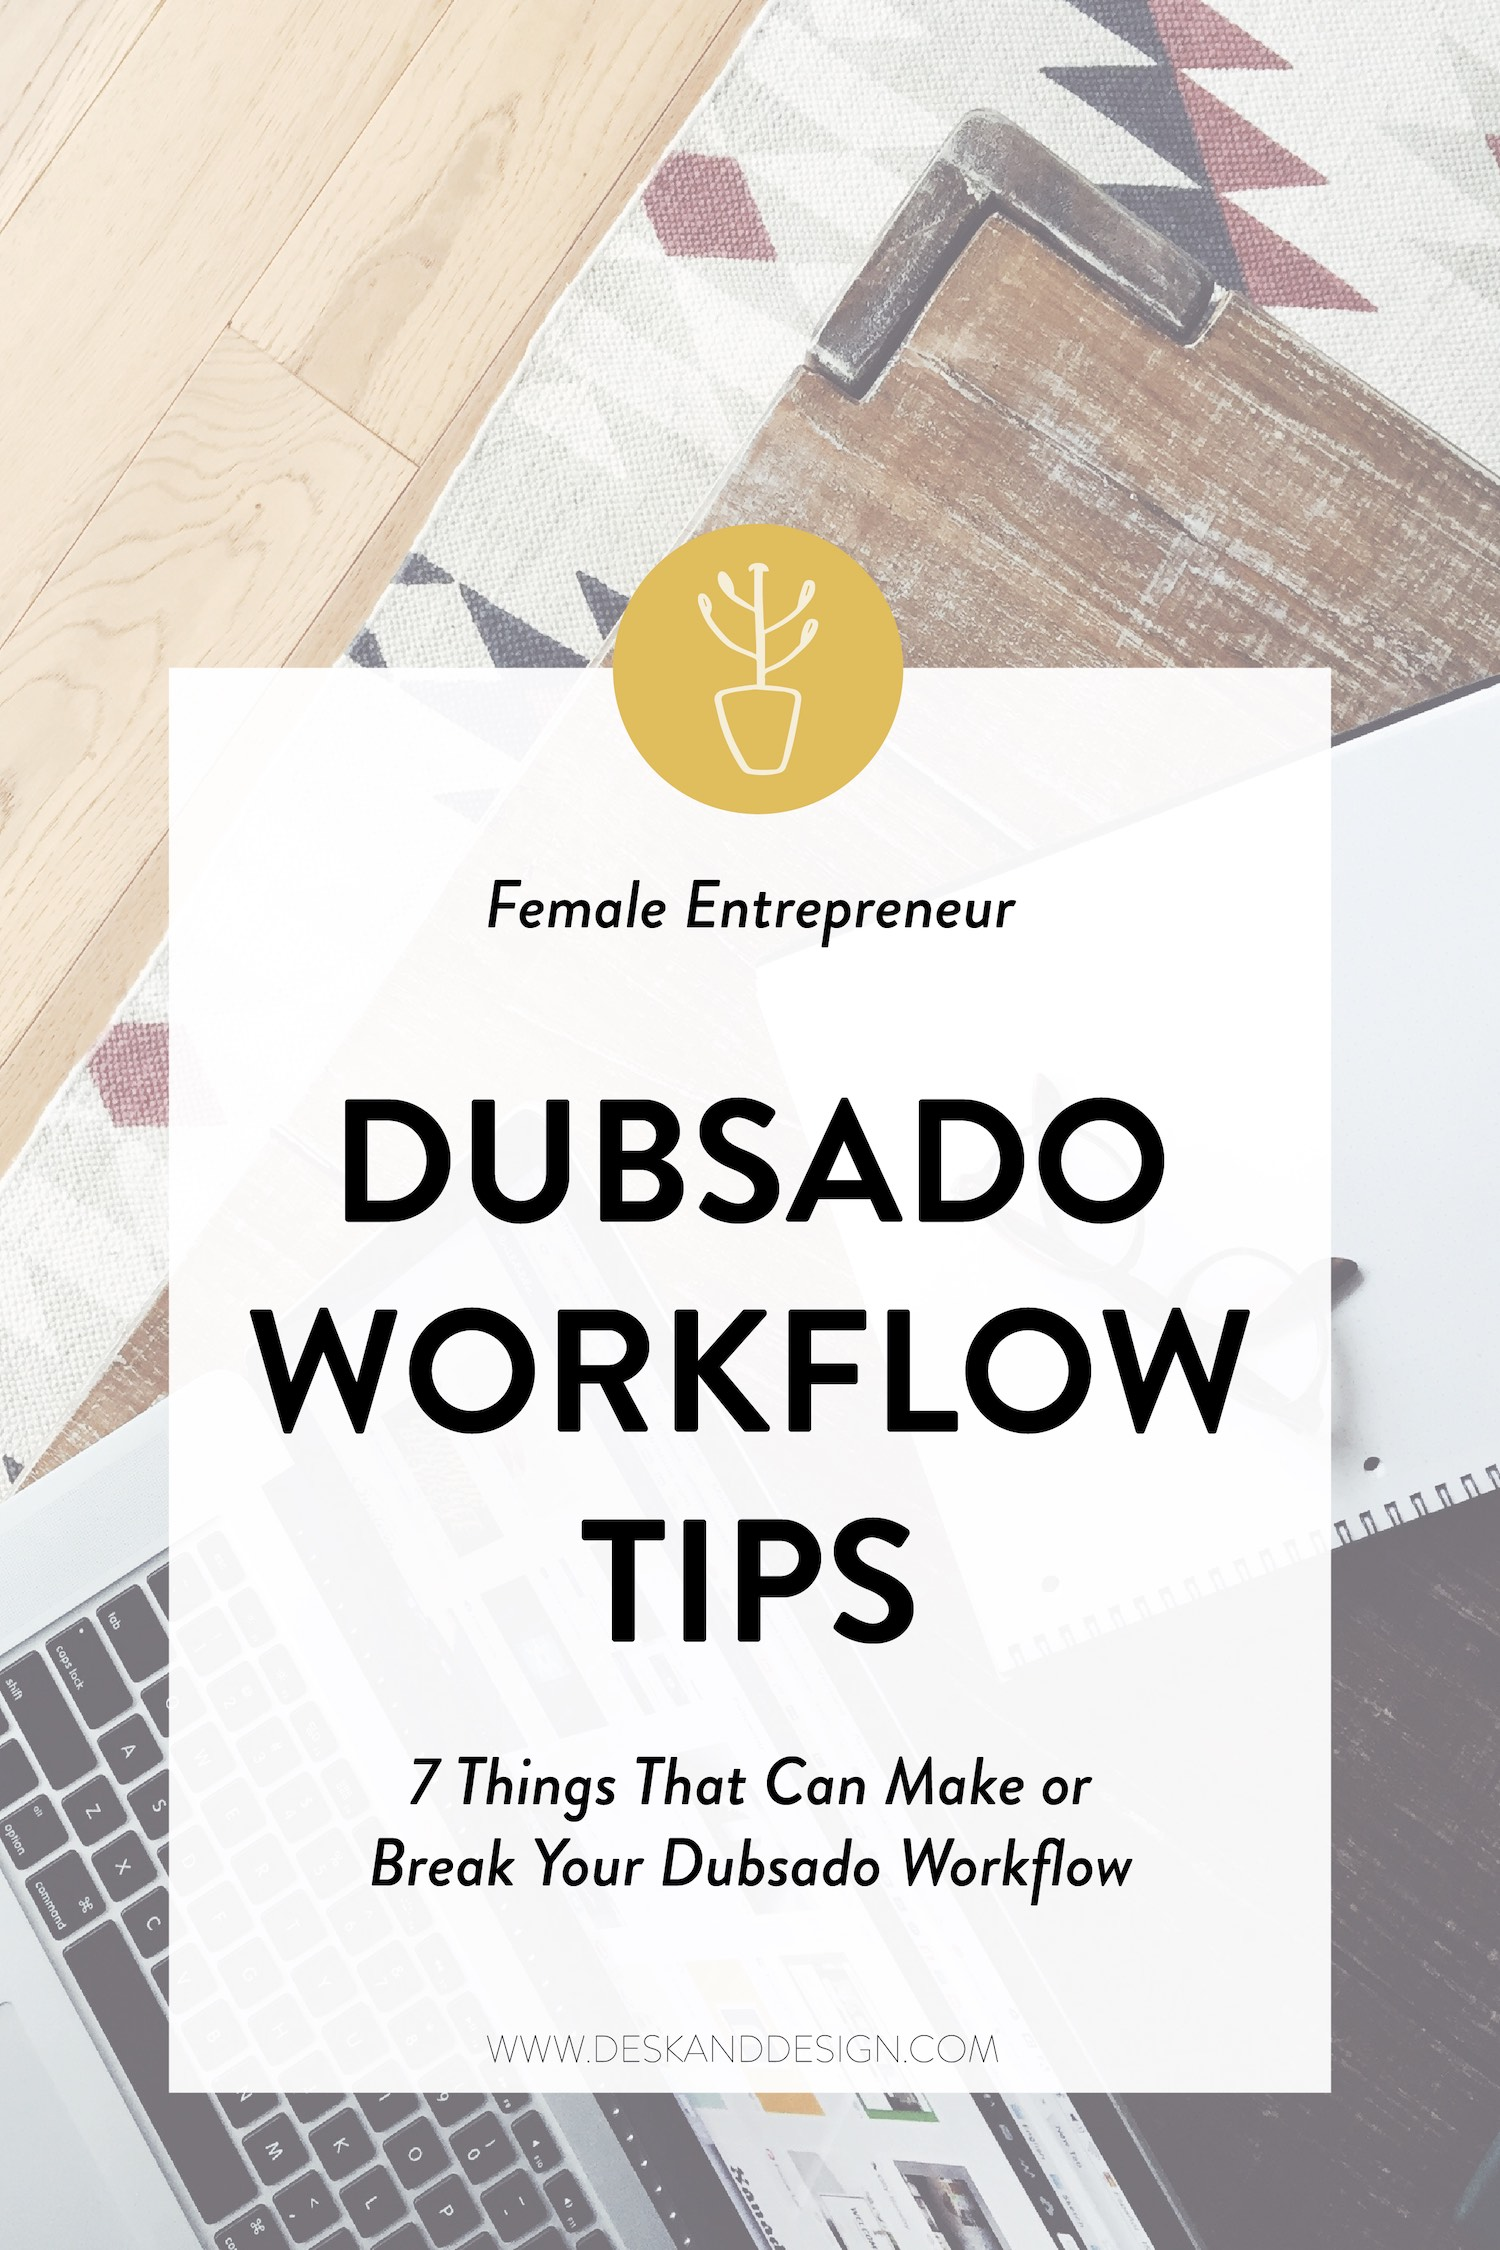 Dubsado Workflow Tips by Desk & Design. 7 Things that can make or break your Dubsado workflow.